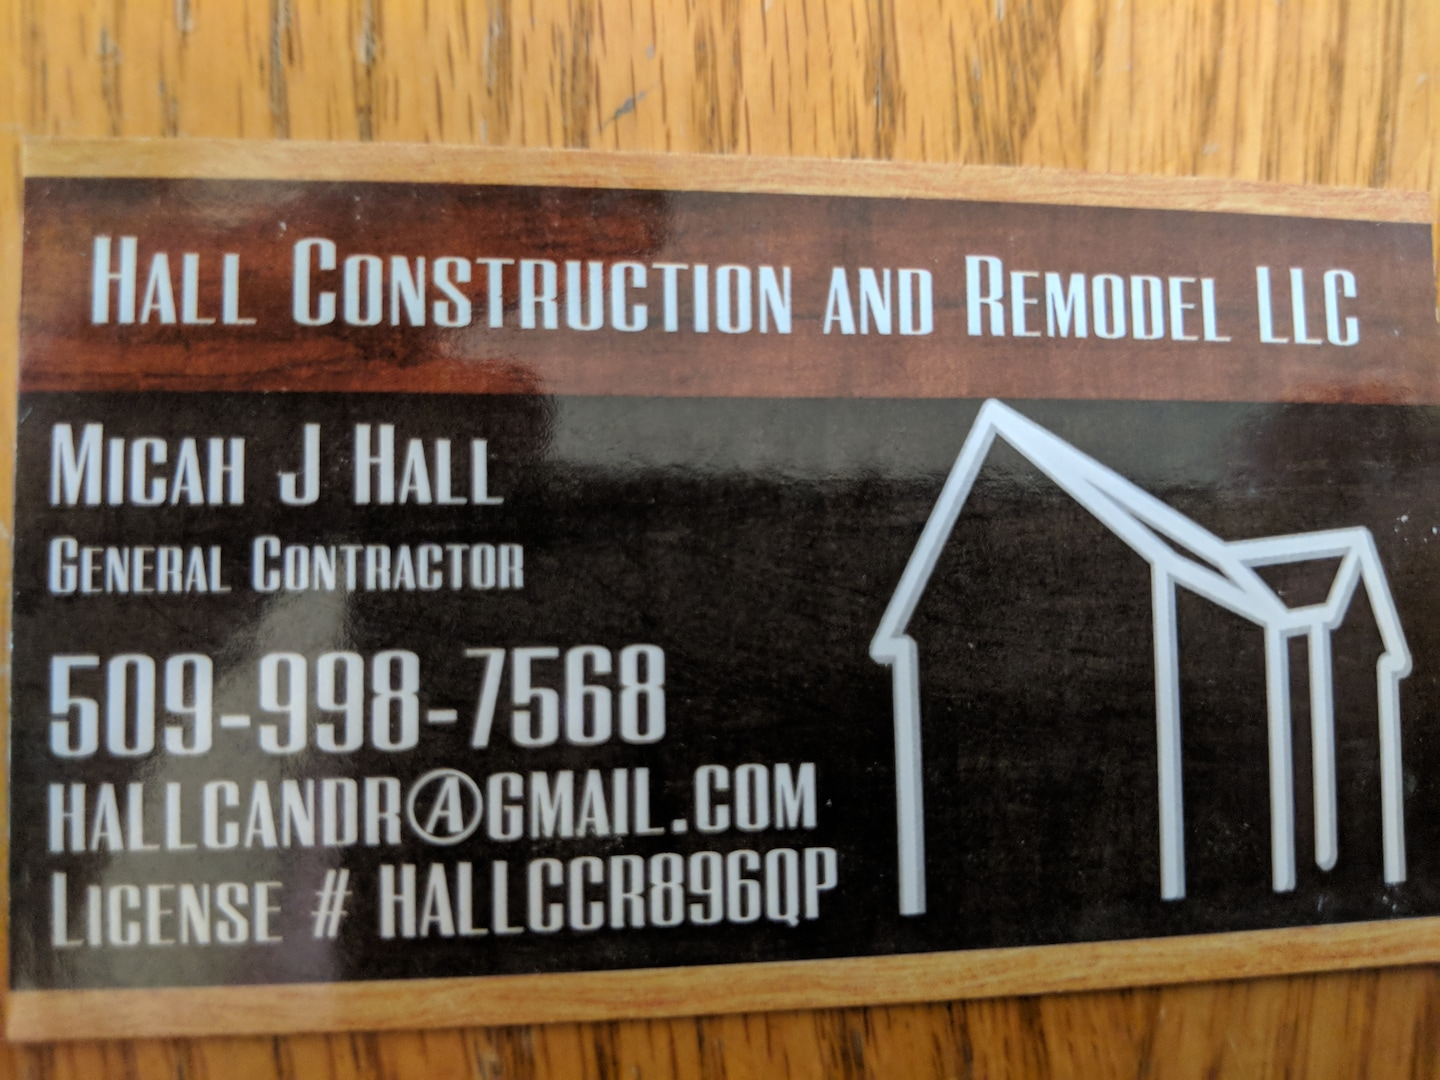 Hall Construction and Remodel LLC